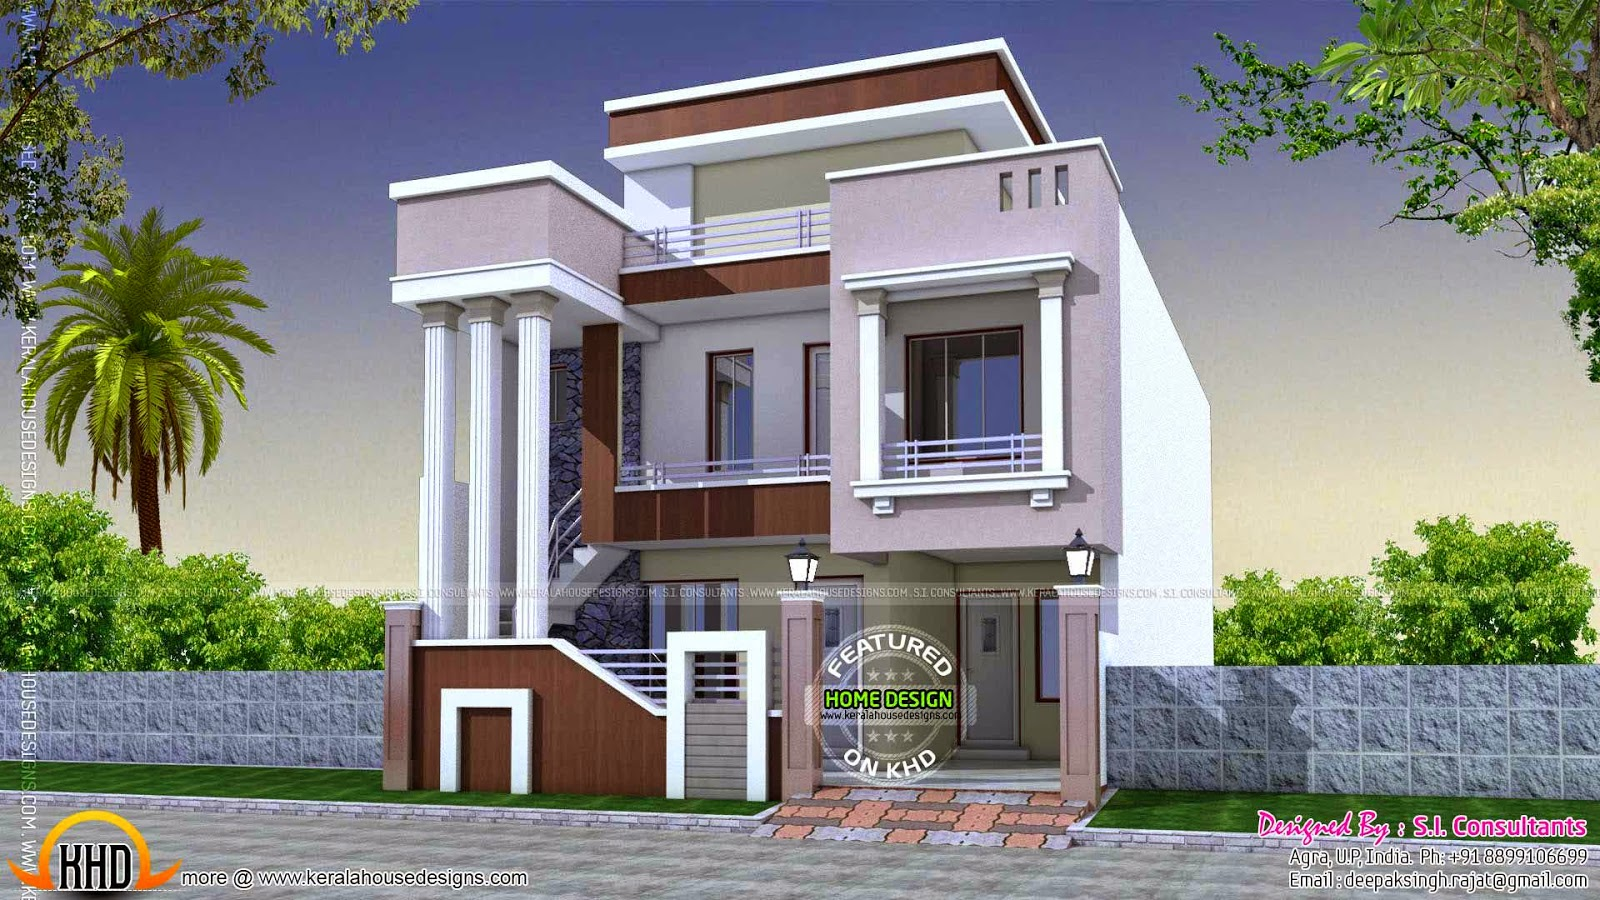 Cute modern home with long pillars - Home Design Simple